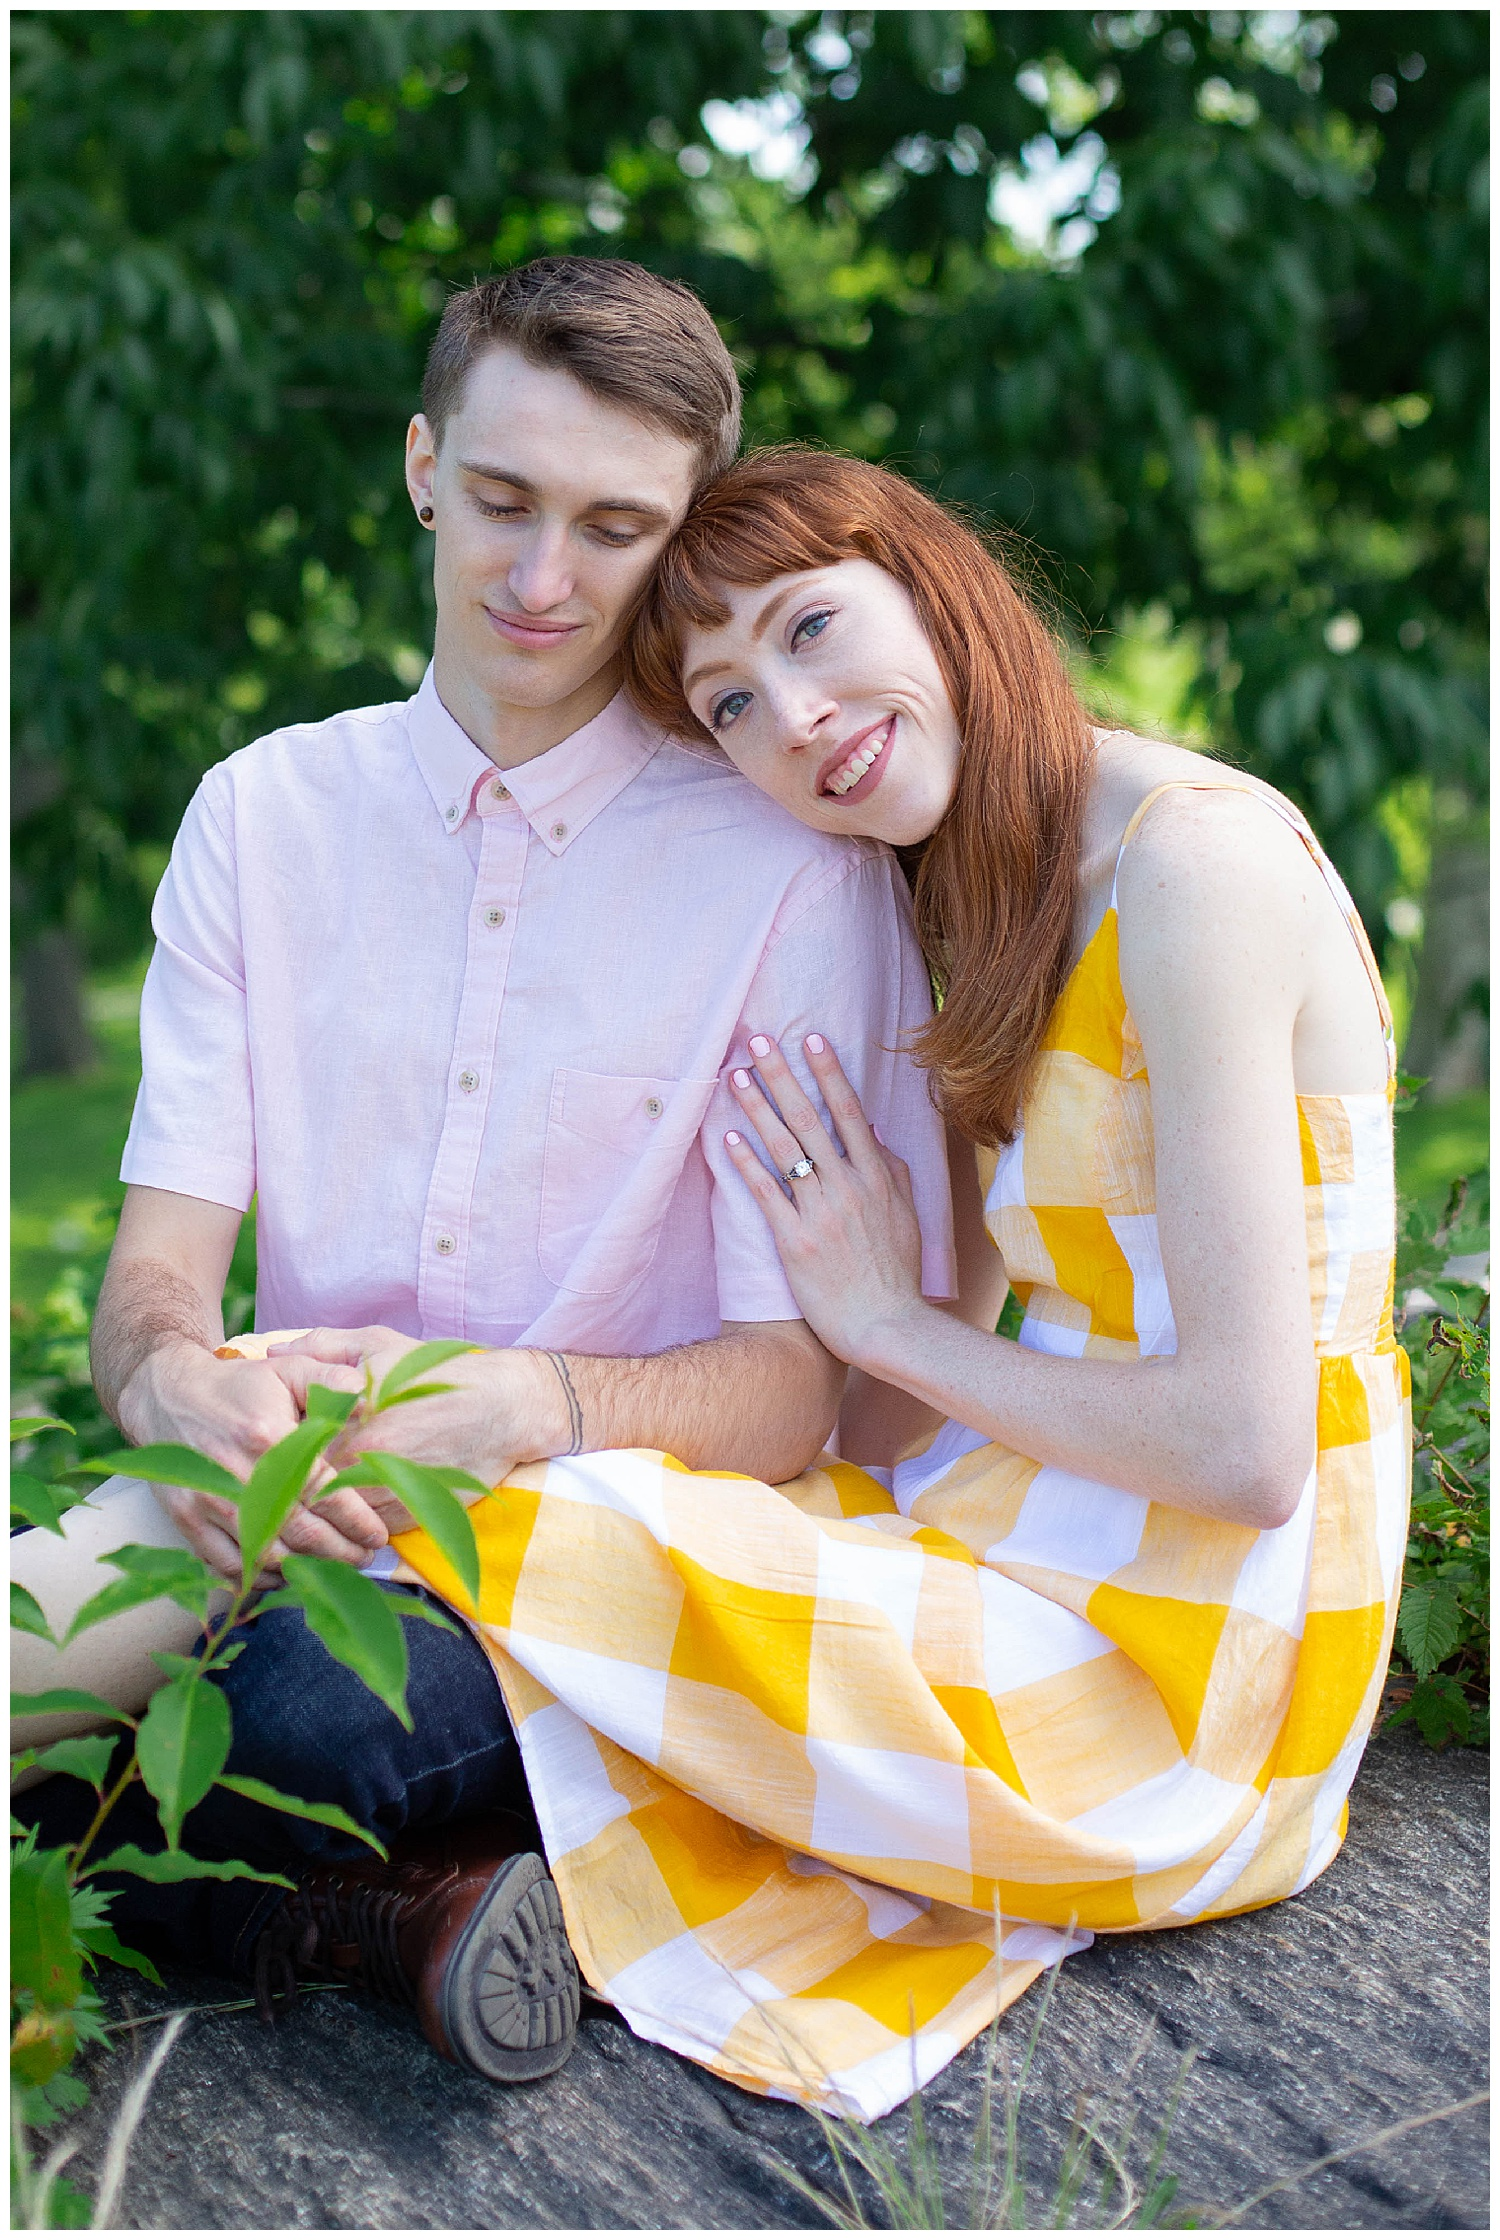 Kate-Alison-Photography-Central-Park-Engagement-Session-Madison-Alex-23.jpg